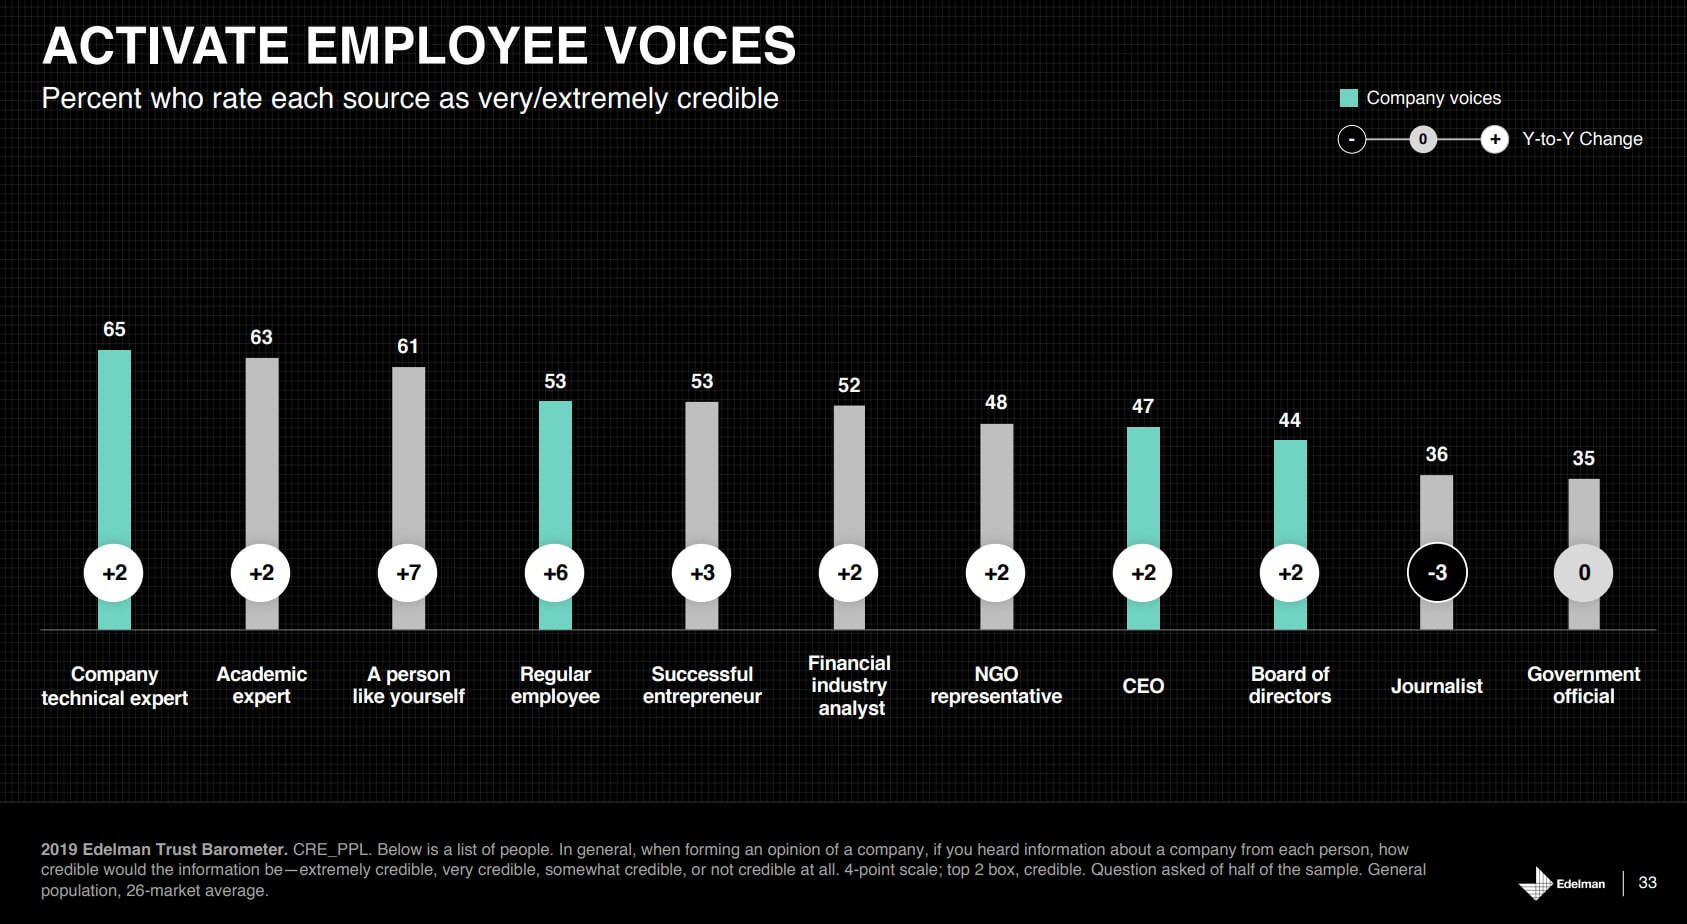 Activate Employee Voices